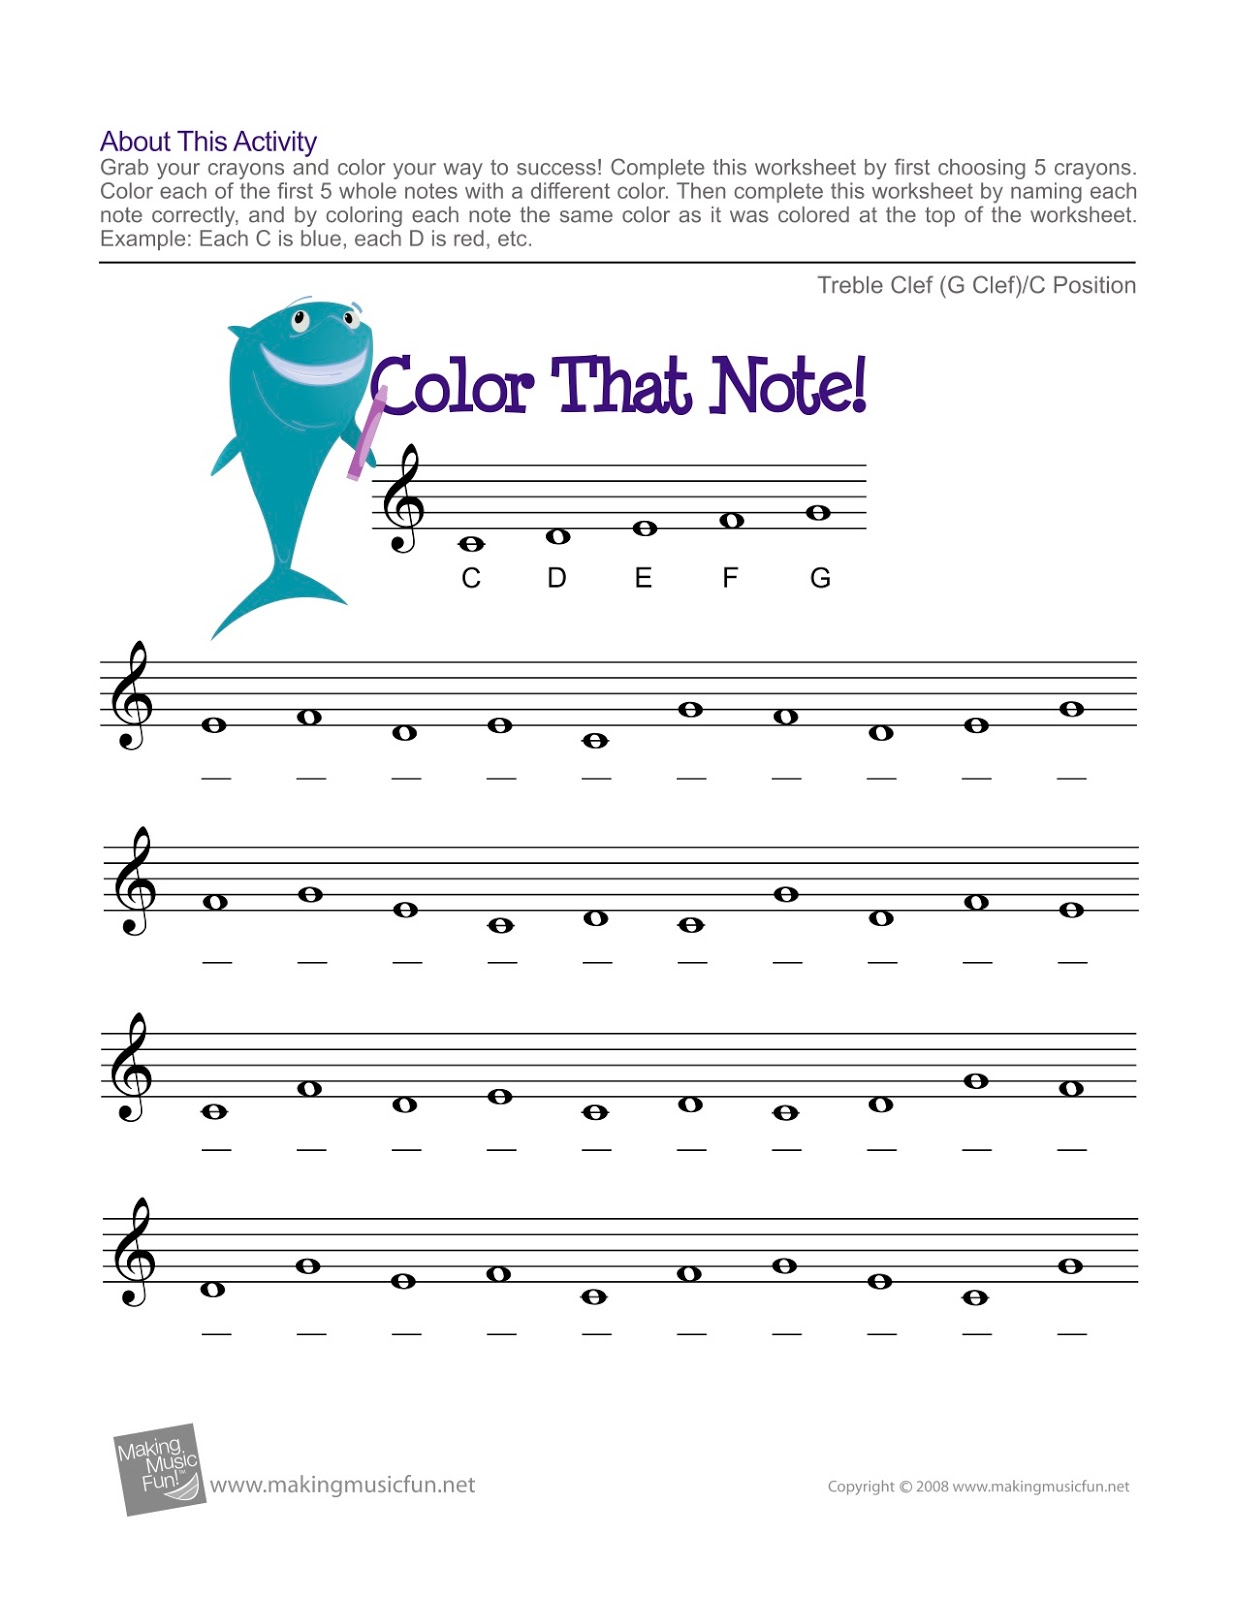 Harris Invictus Music Blog Videos And Worksheets For Keyboard Work